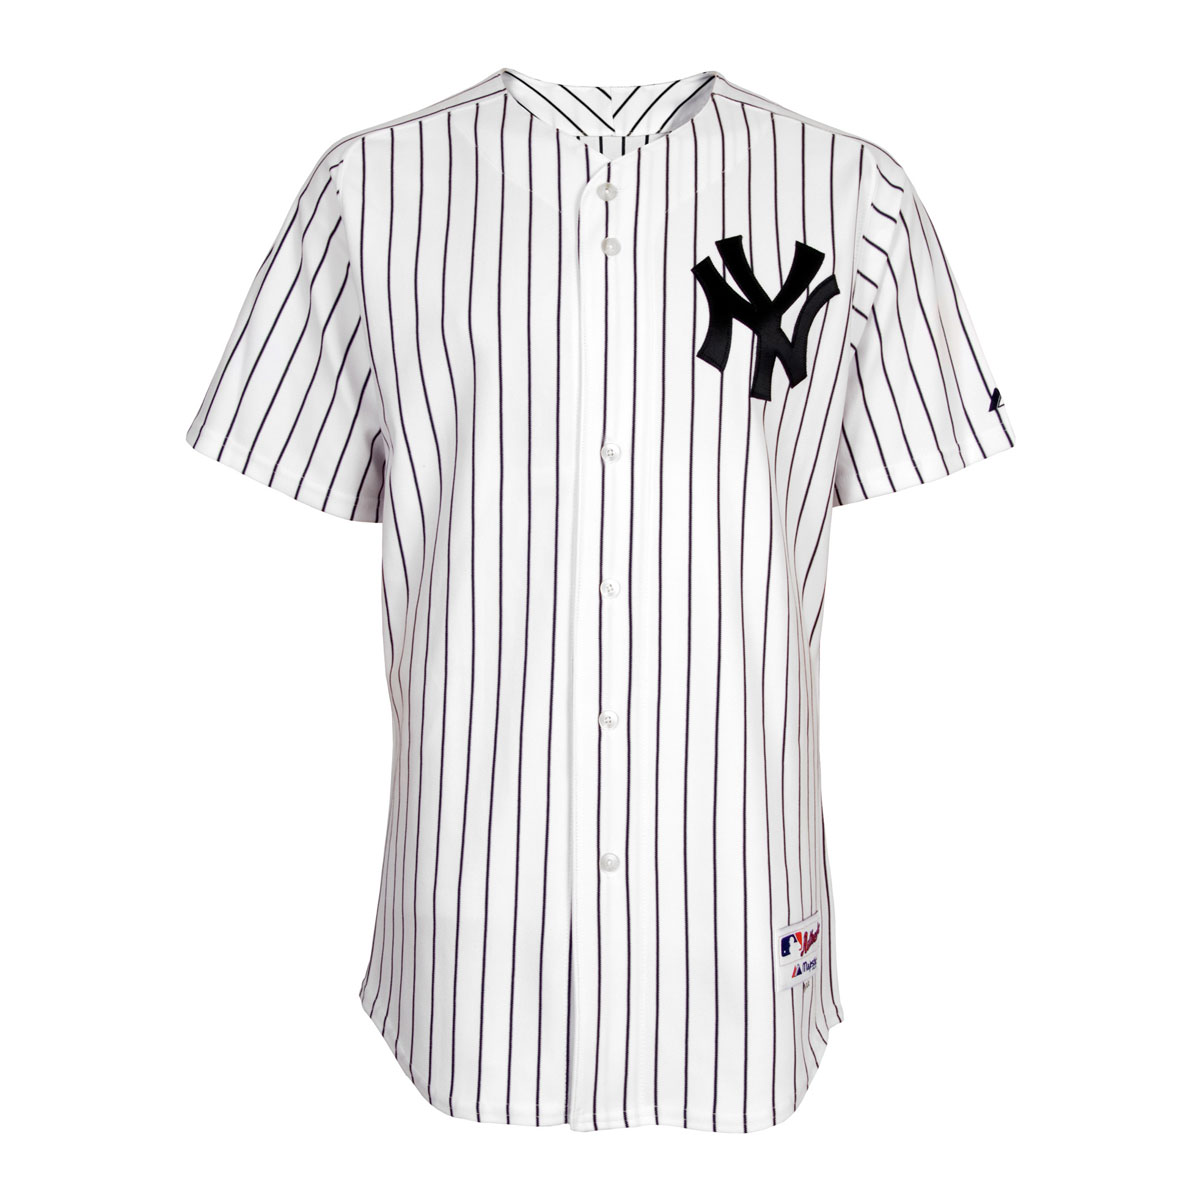 half off f1a44 af0d2 promo code for new york yankees baseball jersey ff007 46b66